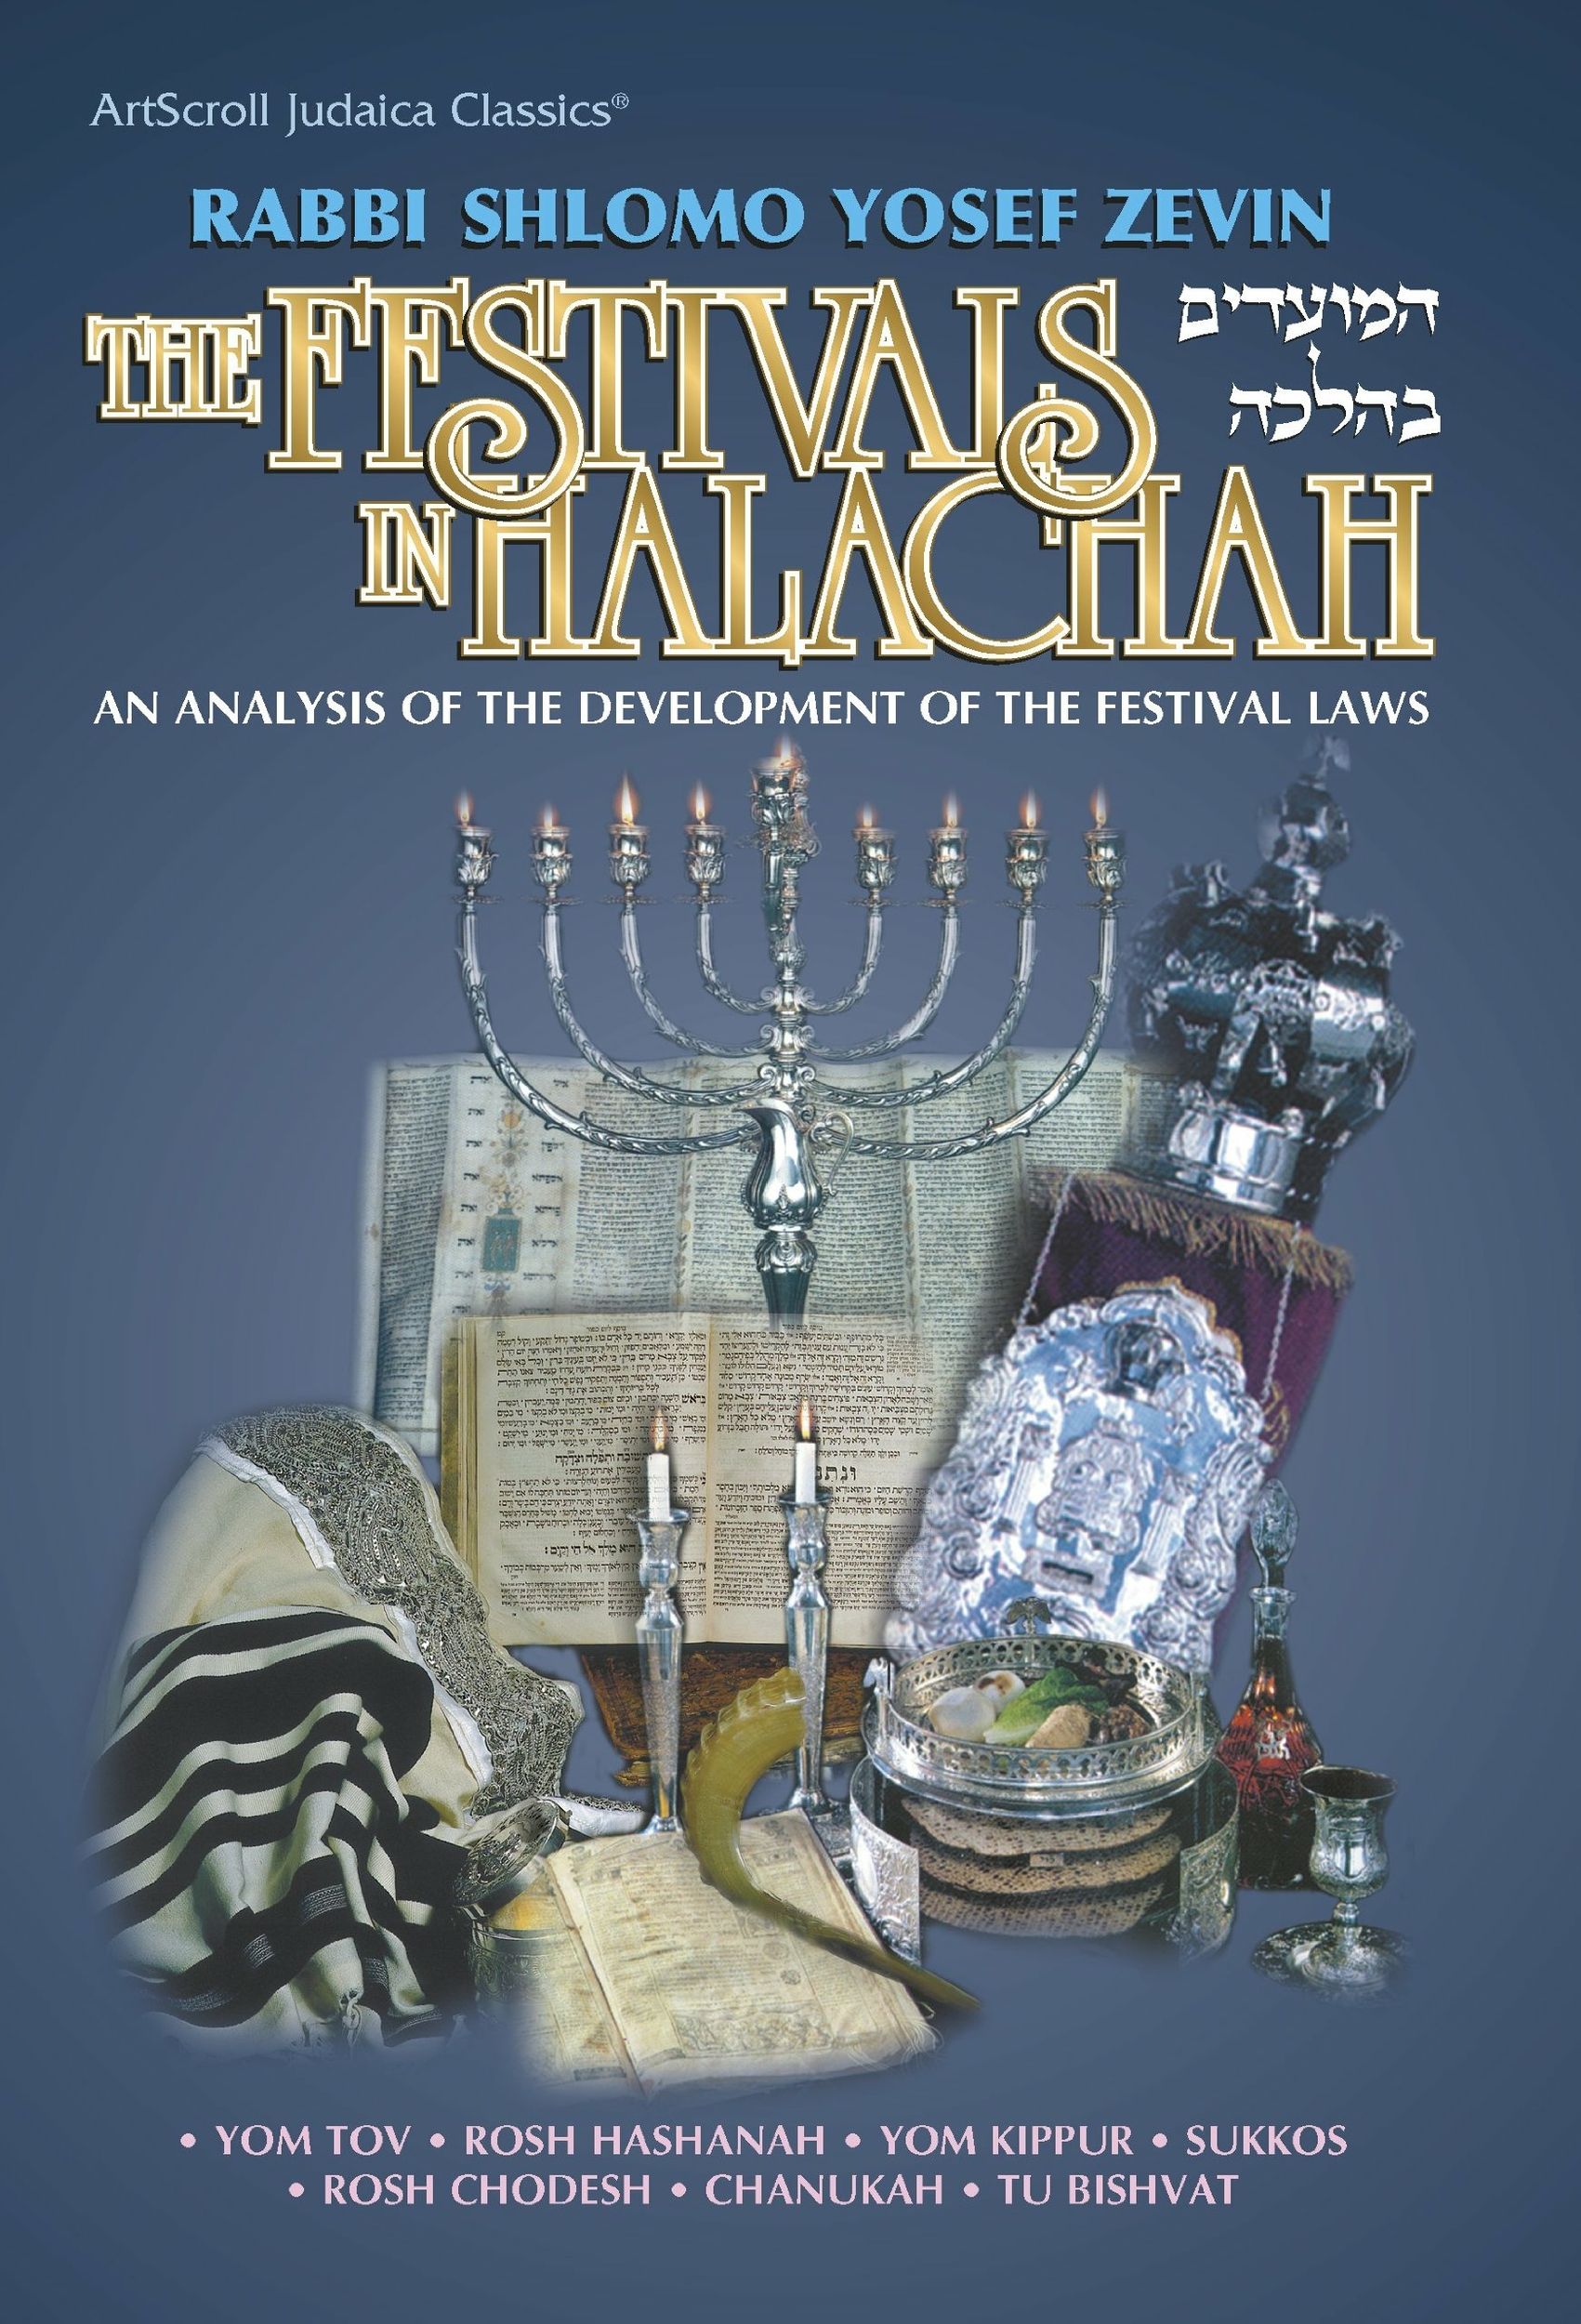 The festivals in Halachah - R Sh. ZEVIN